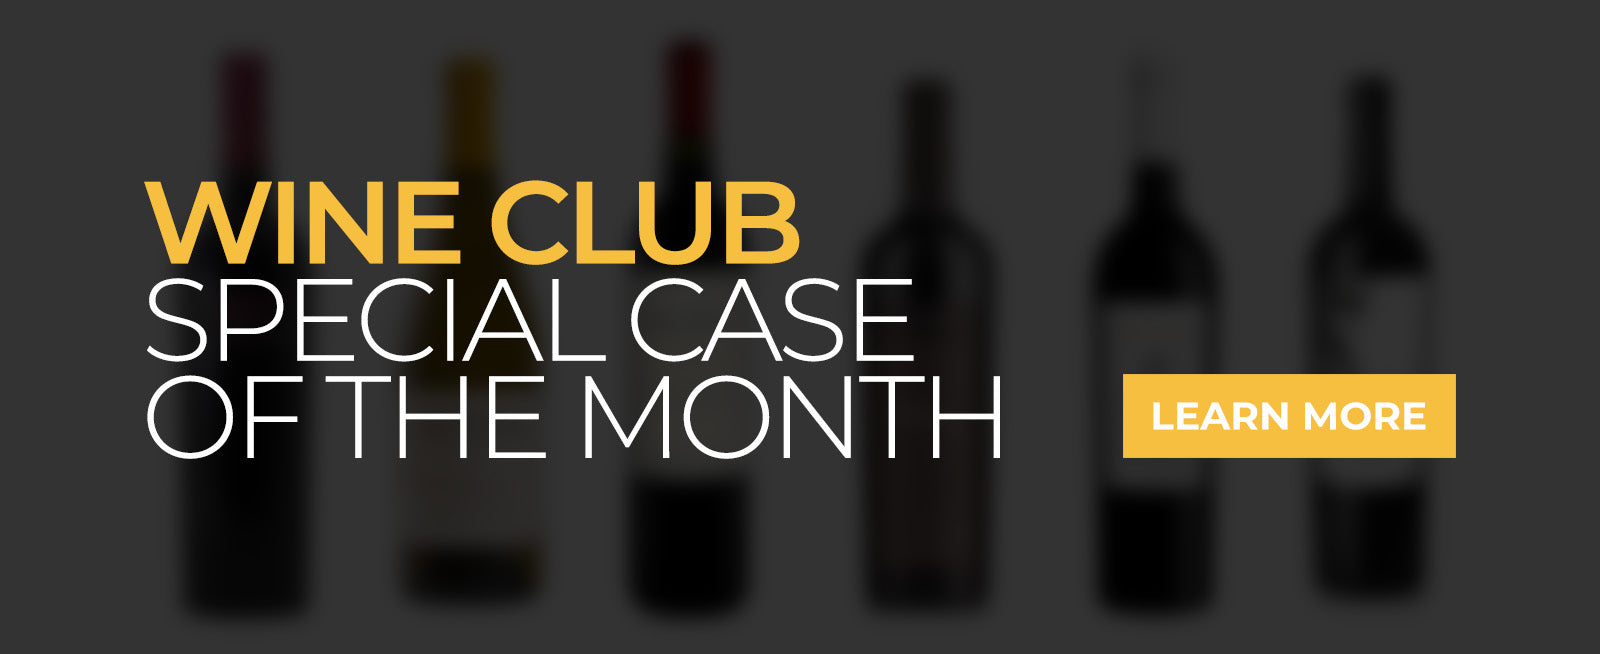 https://liquidityliquor.com/products/wine-of-the-month?variant=7178865573921